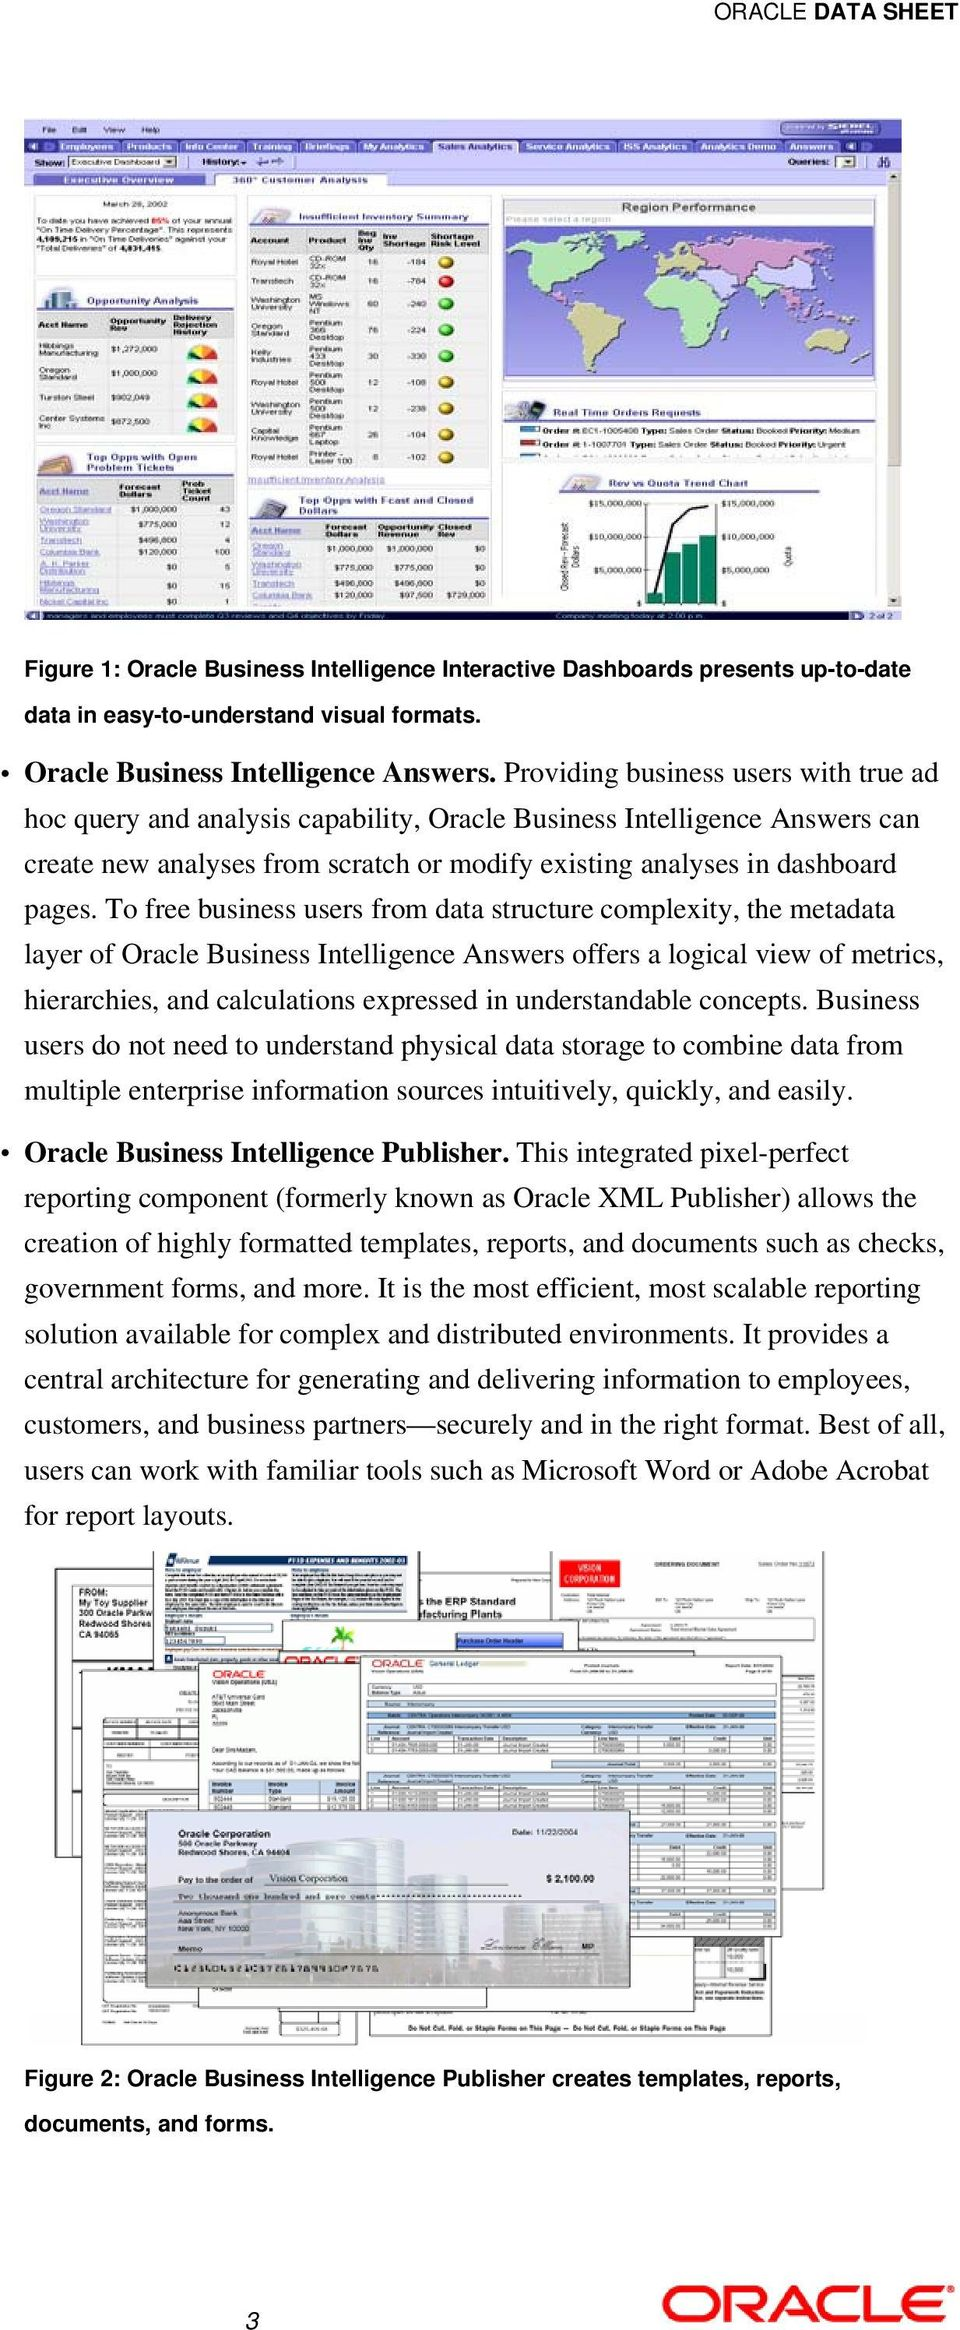 To free business users from data structure complexity, the metadata layer of Oracle Business Intelligence Answers offers a logical view of metrics, hierarchies, and calculations expressed in